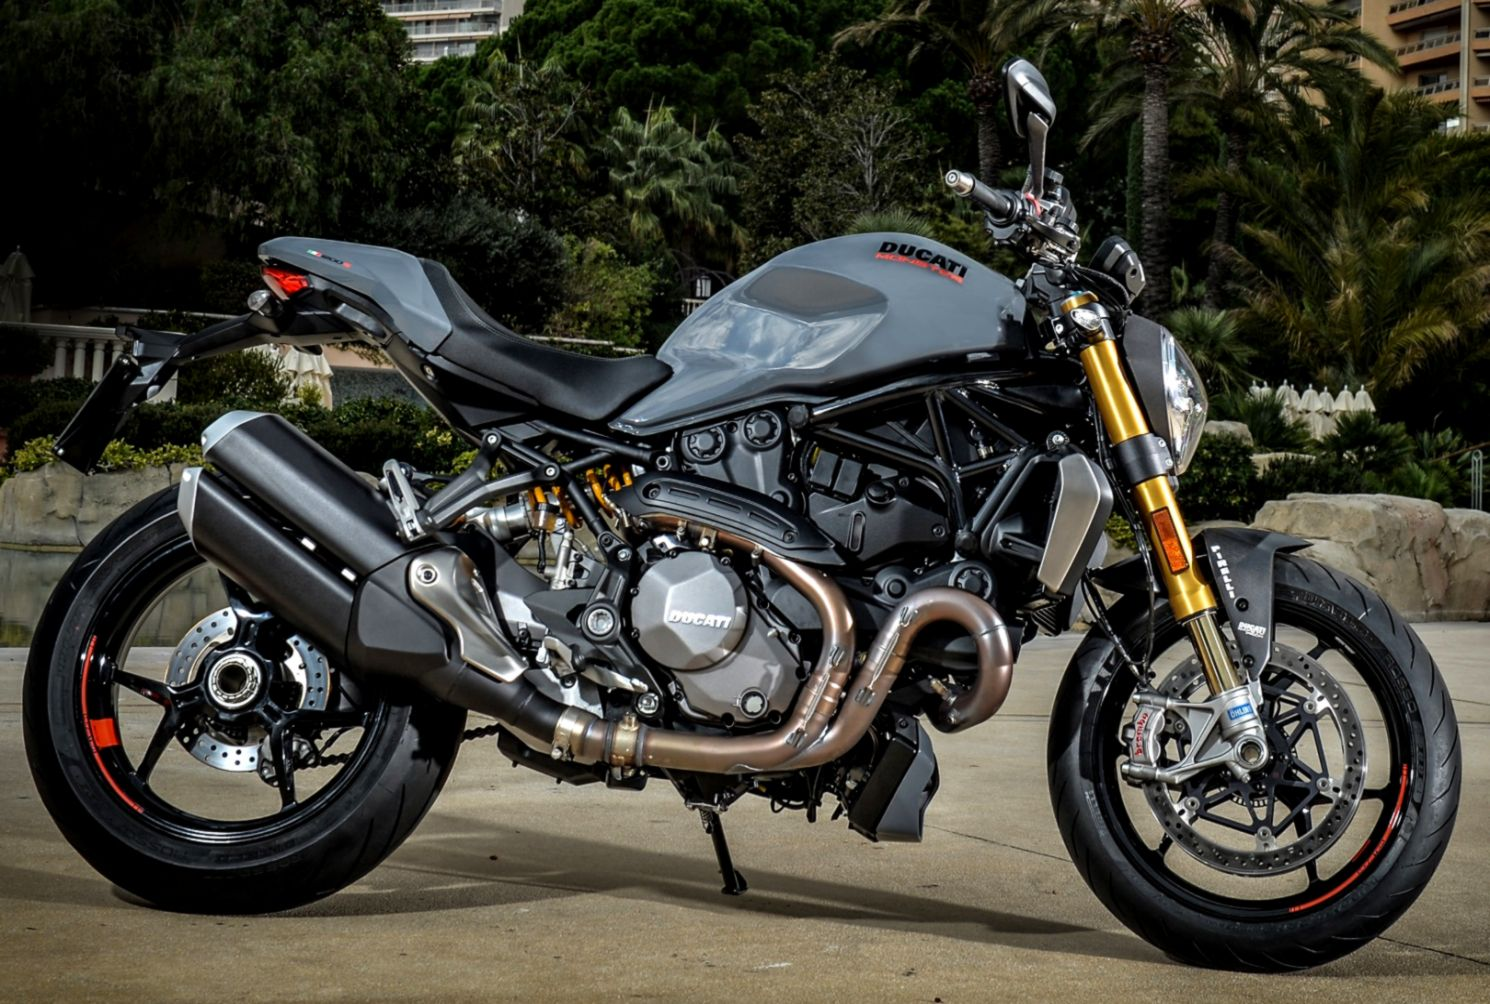 2017 Ducati Monster 1200 S Review Il Mostro Returns